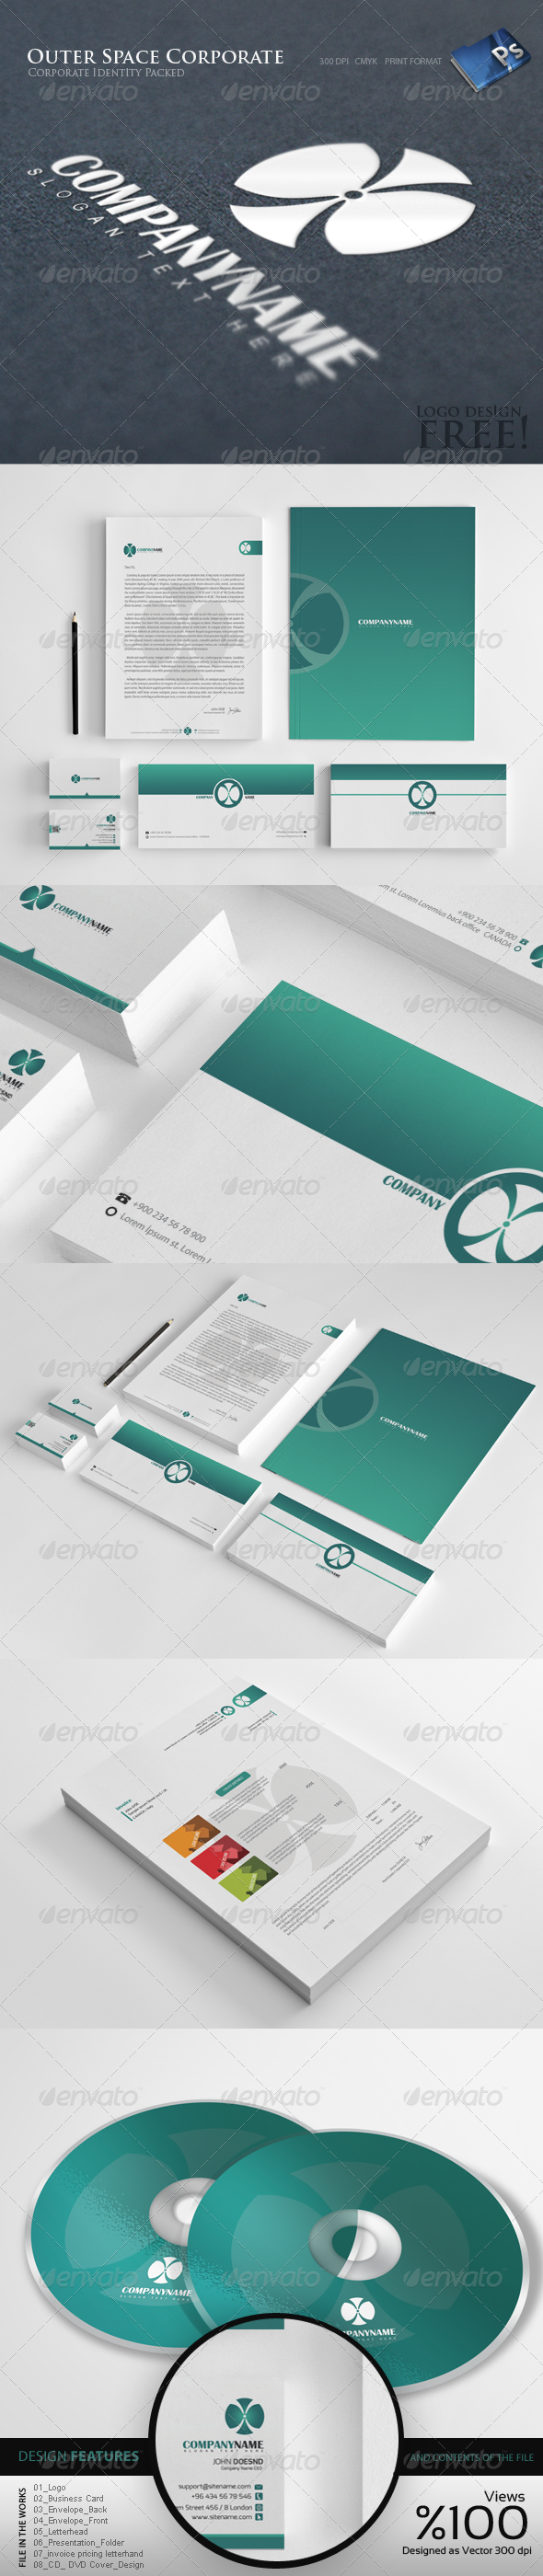 Outer Space - Corporate Identity 8 - Stationery Print Templates